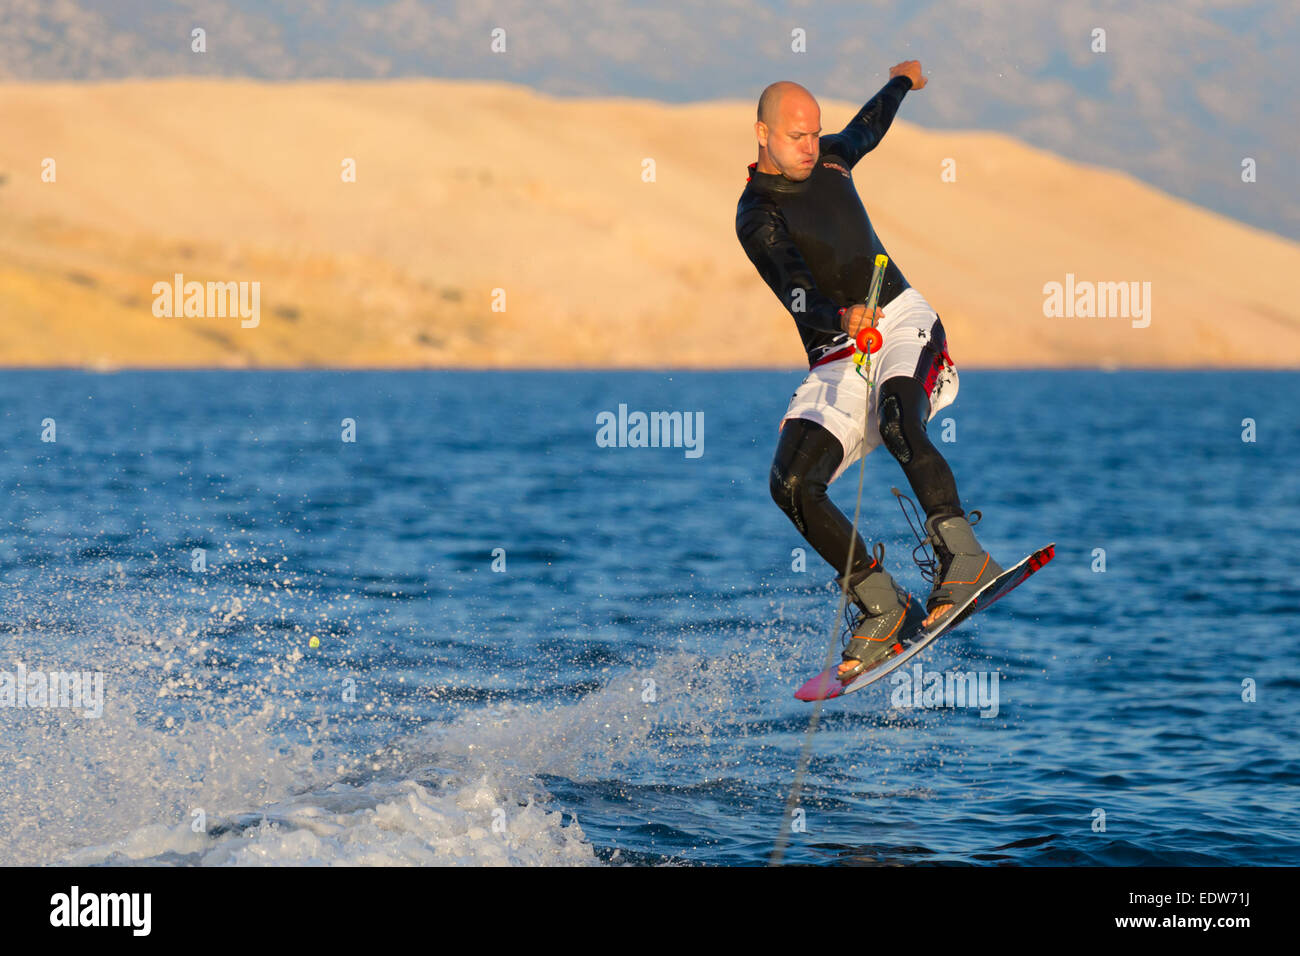 Wakeboarder in sunset. - Stock Image